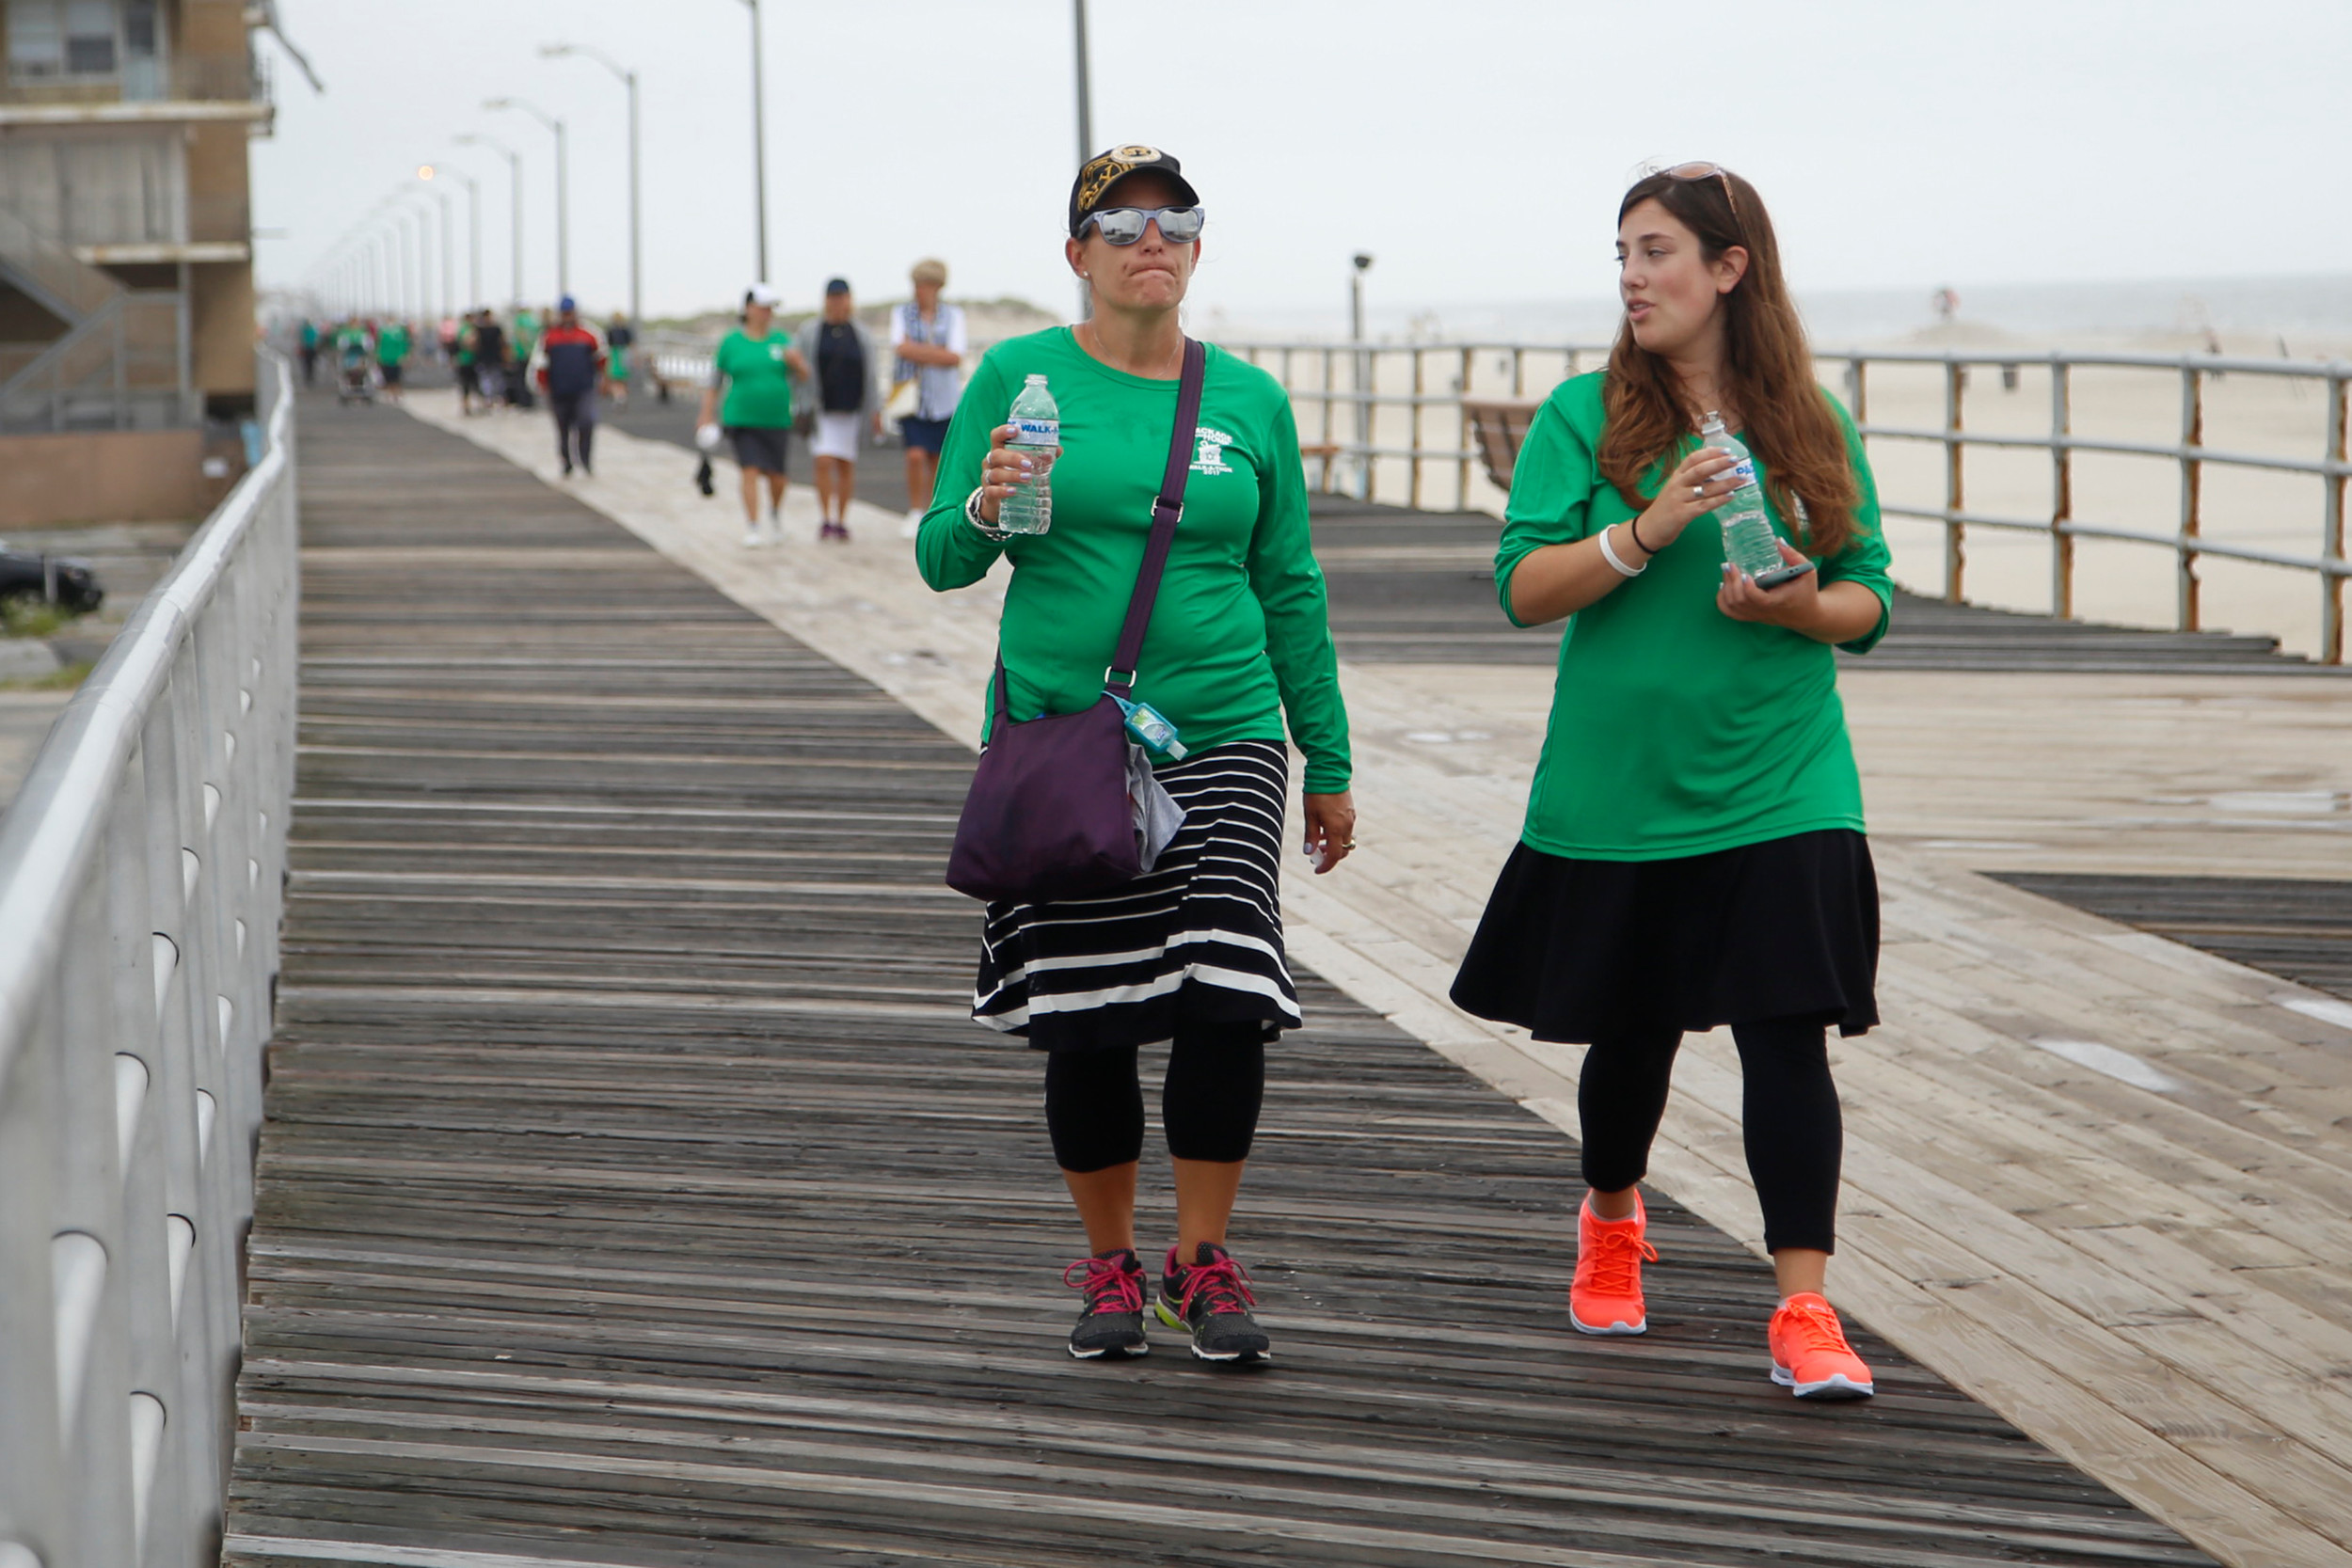 On the boardwalk in Atlantic Beach, Mia Weiss, left, and Michael Wulwick, were among the supporters for A Package From Home.